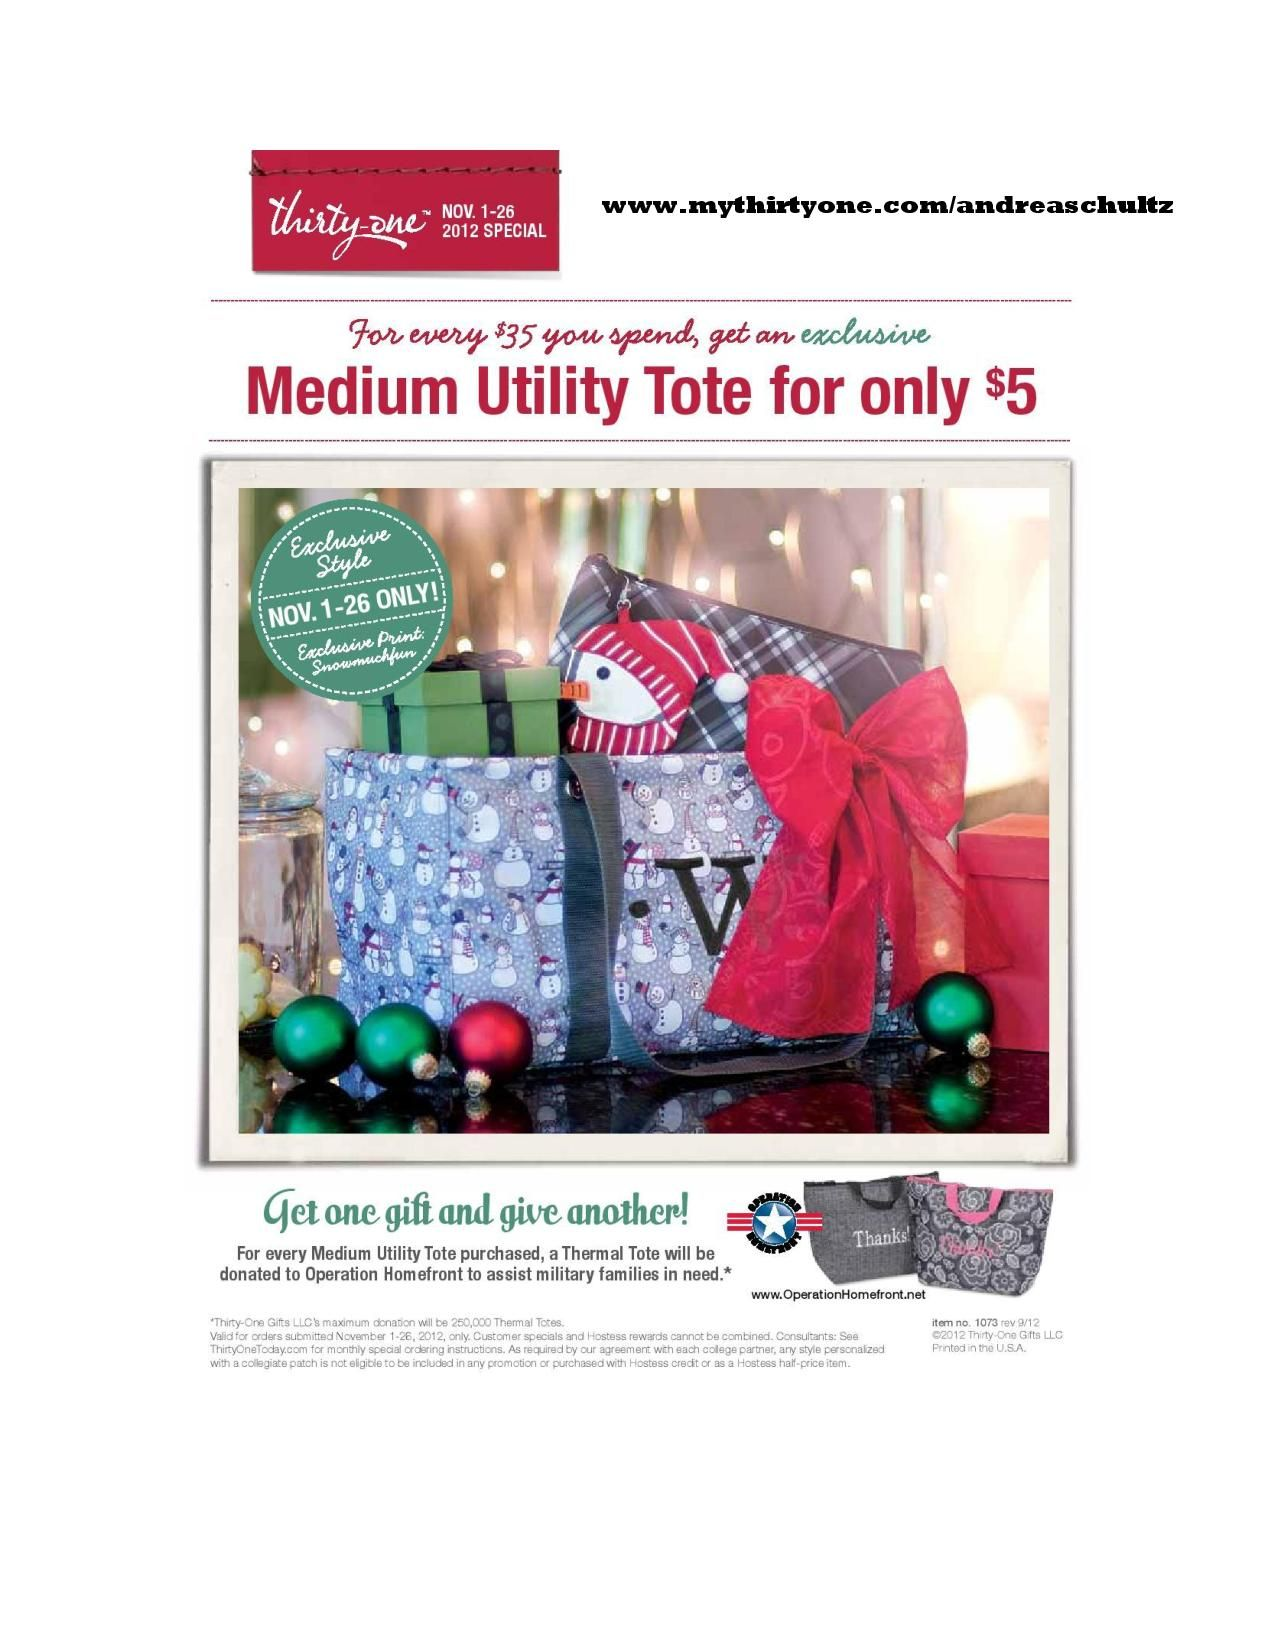 Thirty-One has an awesome Customer Special in November! For EVERY $35 that you spend, you can purchase the Medium Utility Tote for only $5! Here are all of the print options and useful solutions! They make great gifts - and Christmas is right around the corner!  In addition, for every Medium Utility Tote purchased, Thirty-One will donate a thermal tote to Operation Home Front to assist military families in need! Win-Win!  Order yours at www.mythirtyone.com/andreaschultz